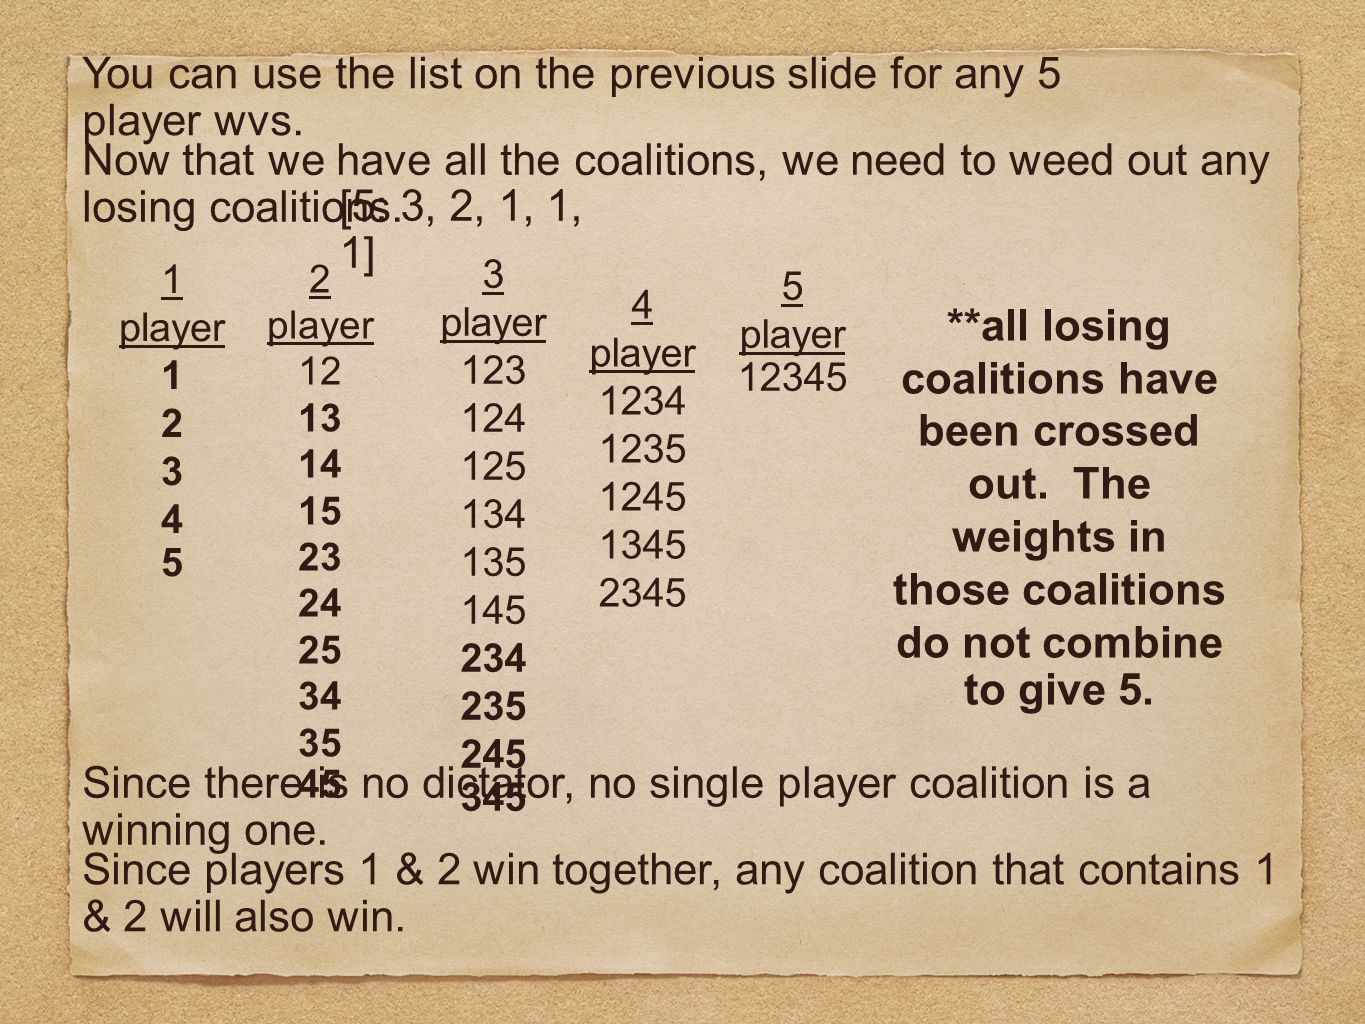 You can use the list on the previous slide for any 5 player wvs.